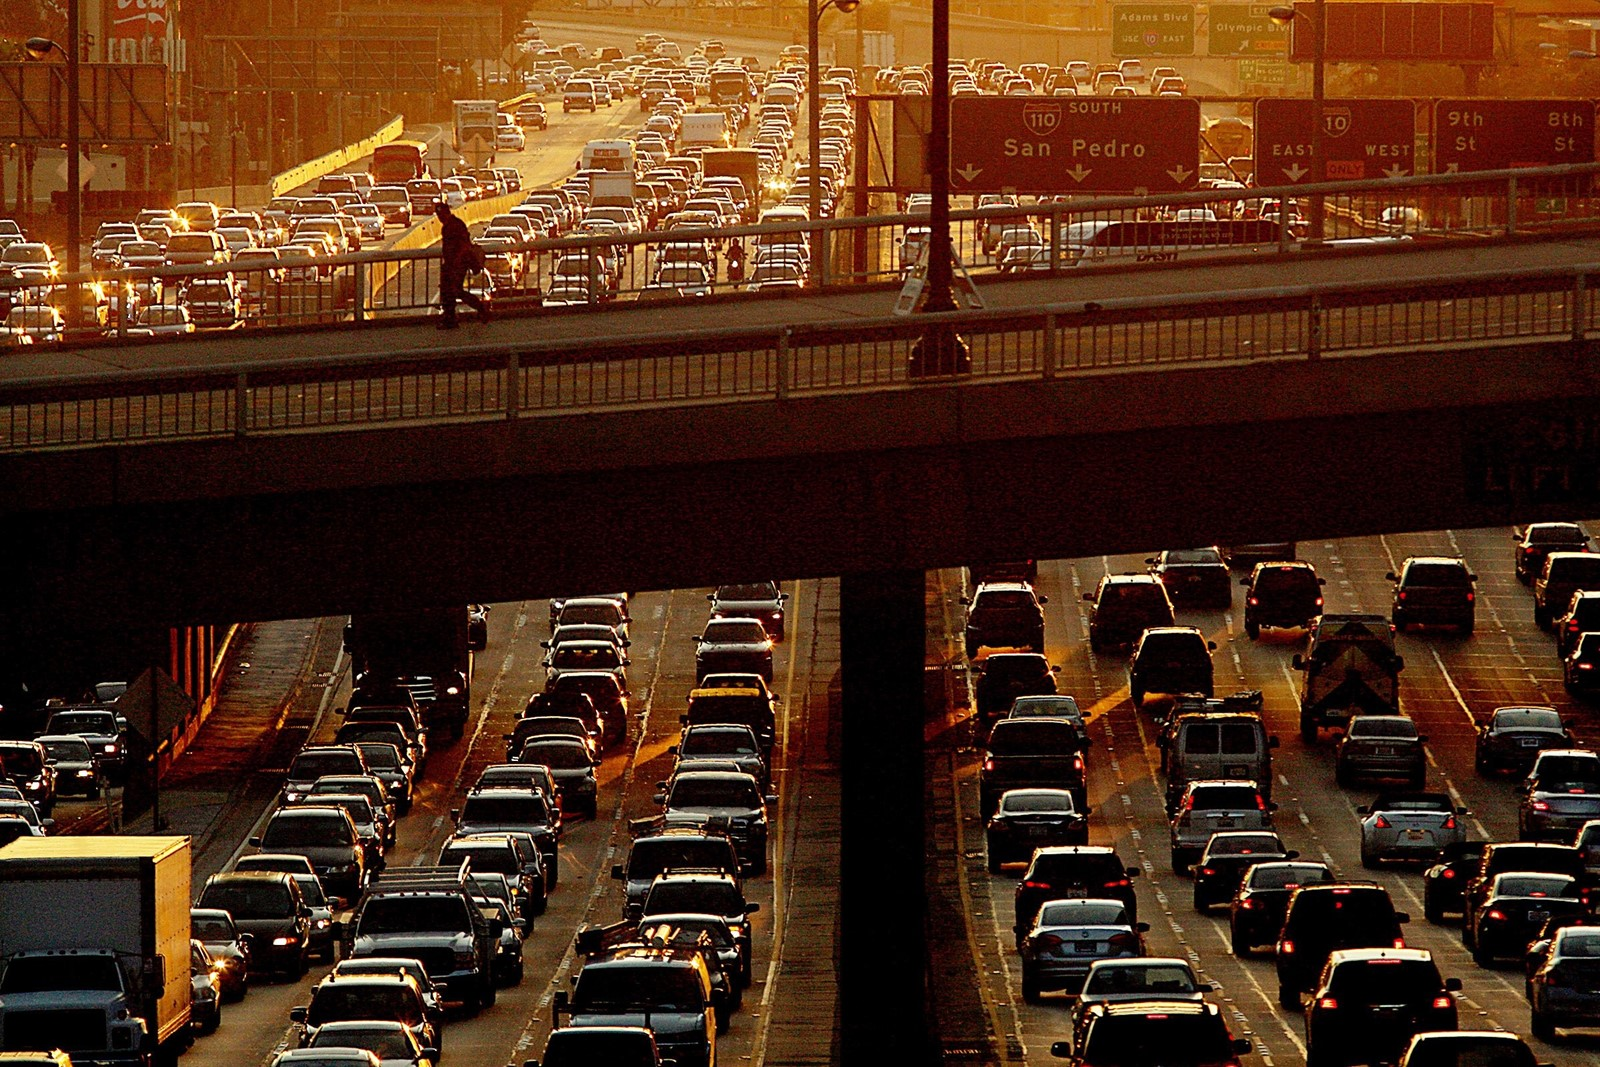 Under the Clean Air Act, California is the only state that can adopt its own emissions rules, but other states can then adopt them. — Photograph: Luis Sinco/Los Angeles Times.